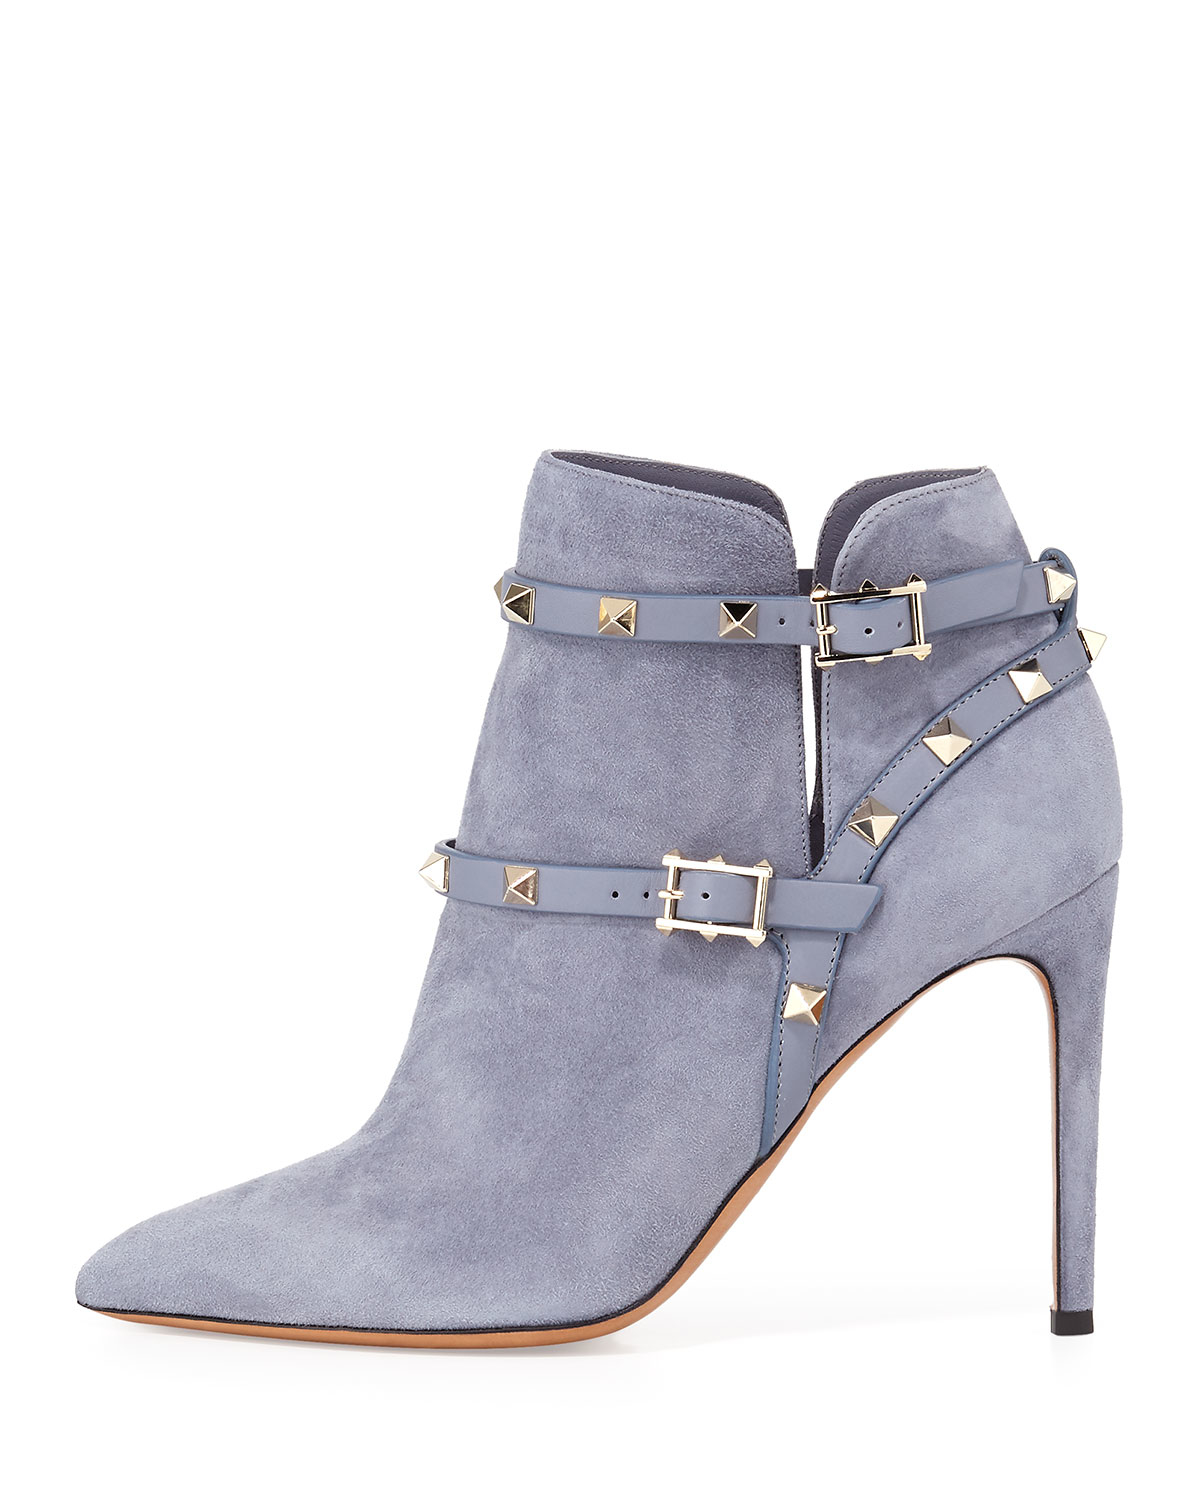 50ced2a98dc36 Gallery. Previously sold at: Bergdorf Goodman · Women's Valentino Rockstud  Boots